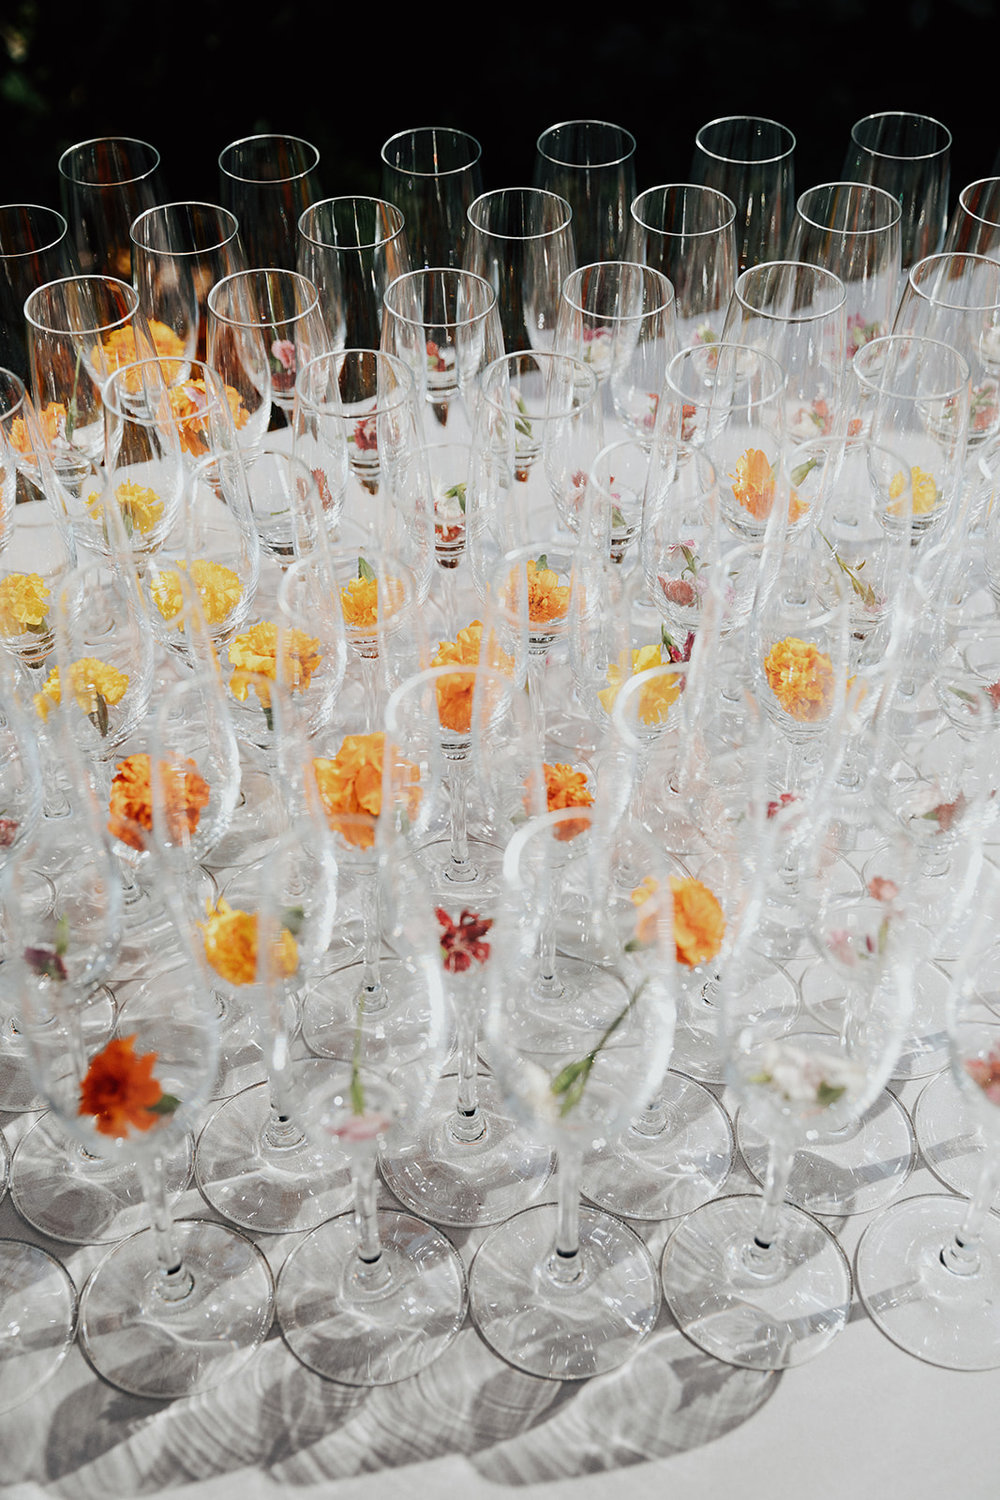 Colorful flower garnishes for welcome beverages. Healdsburg wedding flowers by Venn Floral at Ru's Farm photographed by Logan Cole.